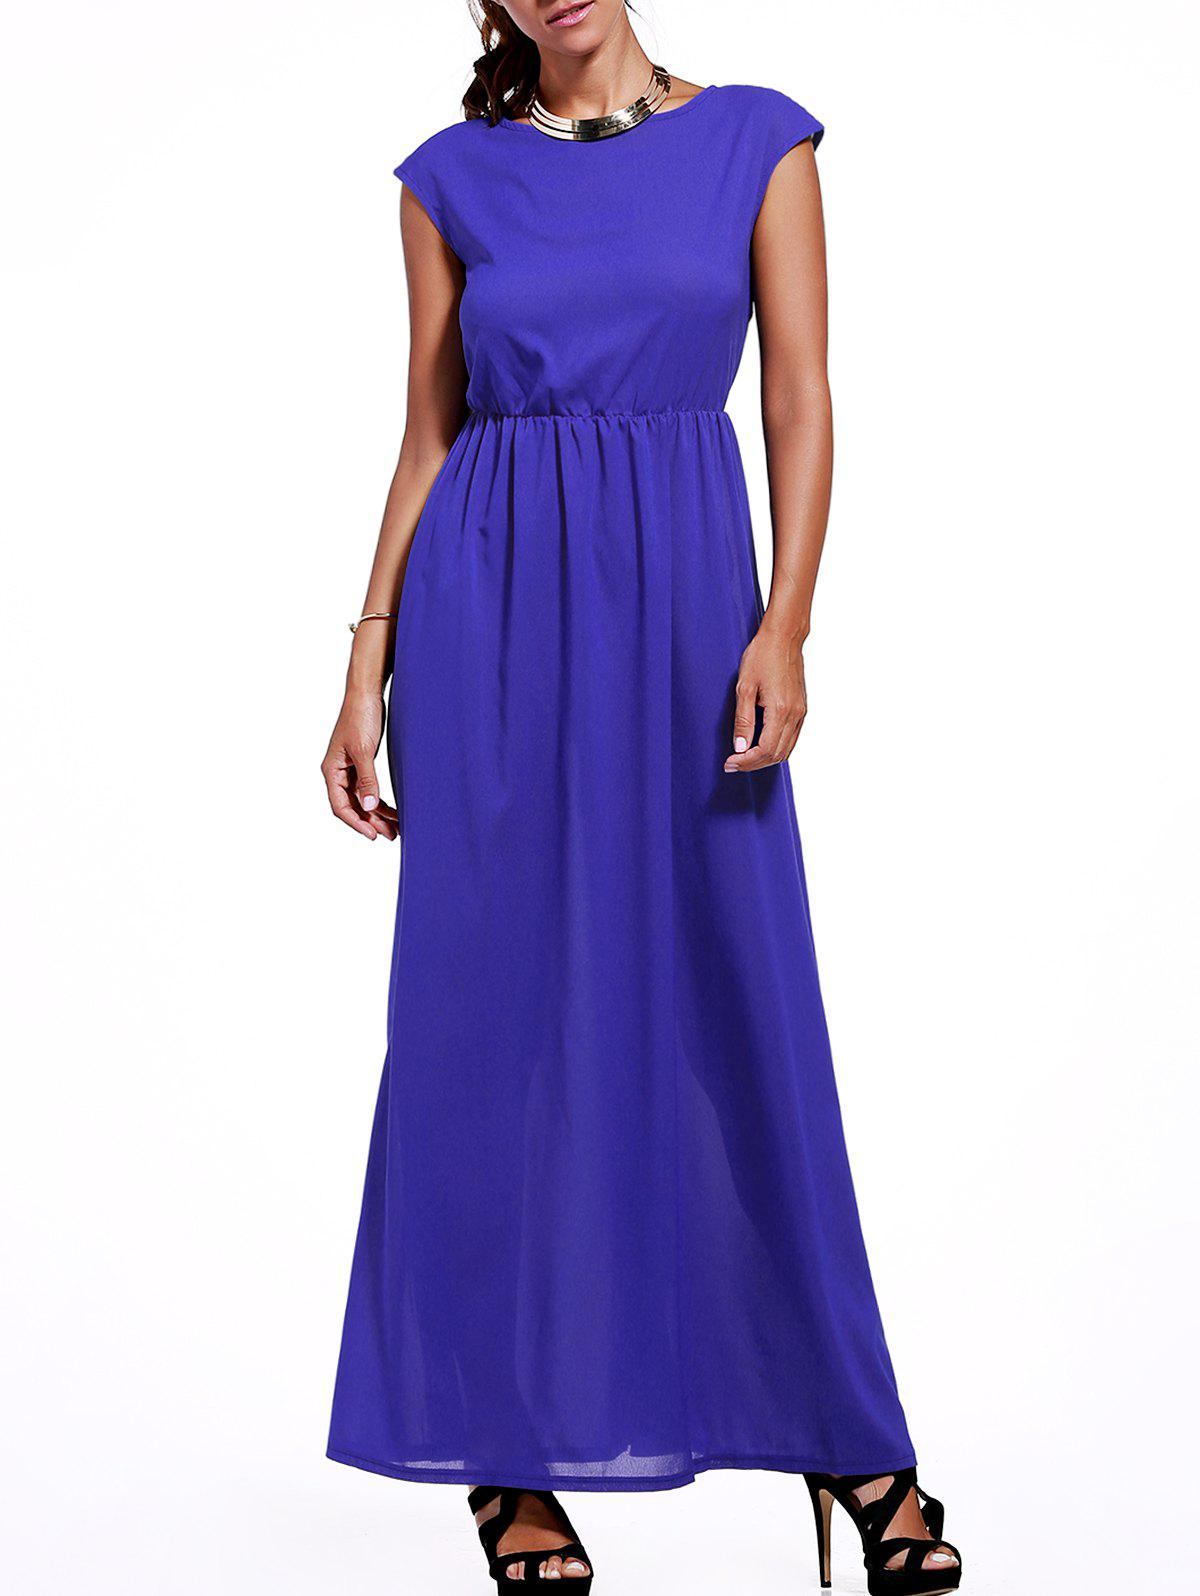 Attractive Women's Cap Sleeve Blue High-Waist Maxi Dress